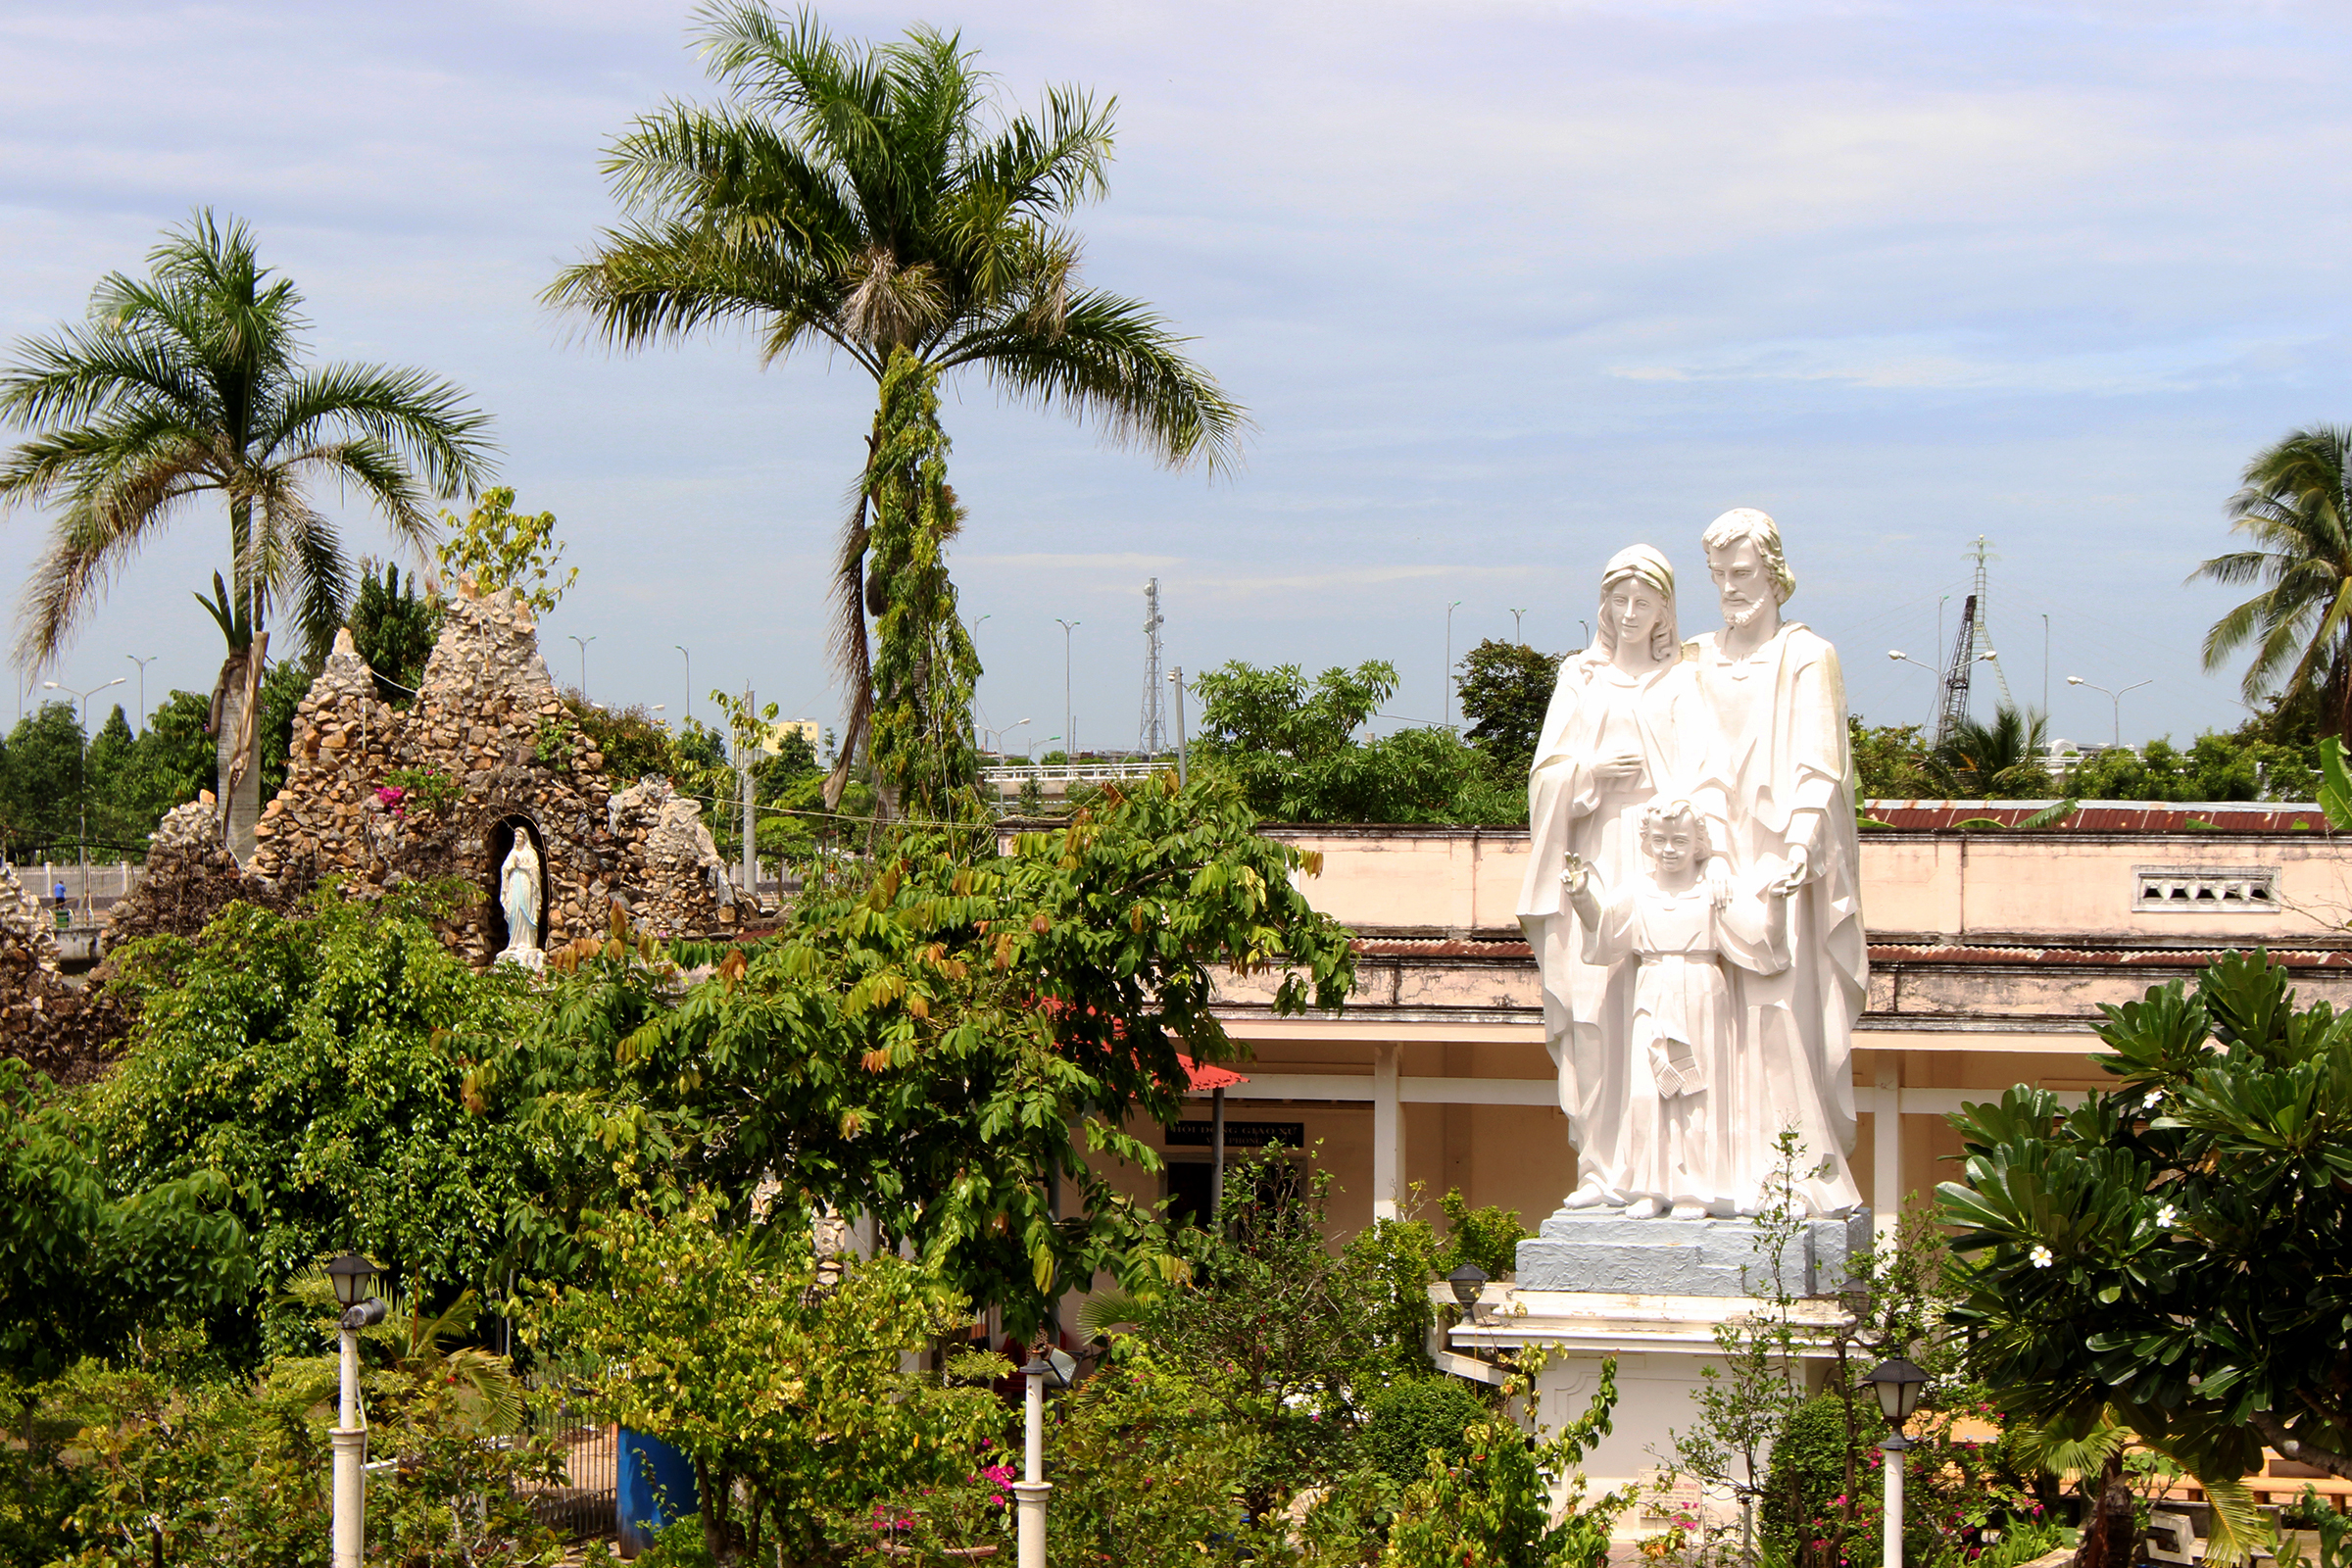 130-year-old Mekong Delta church a marriage of West, East